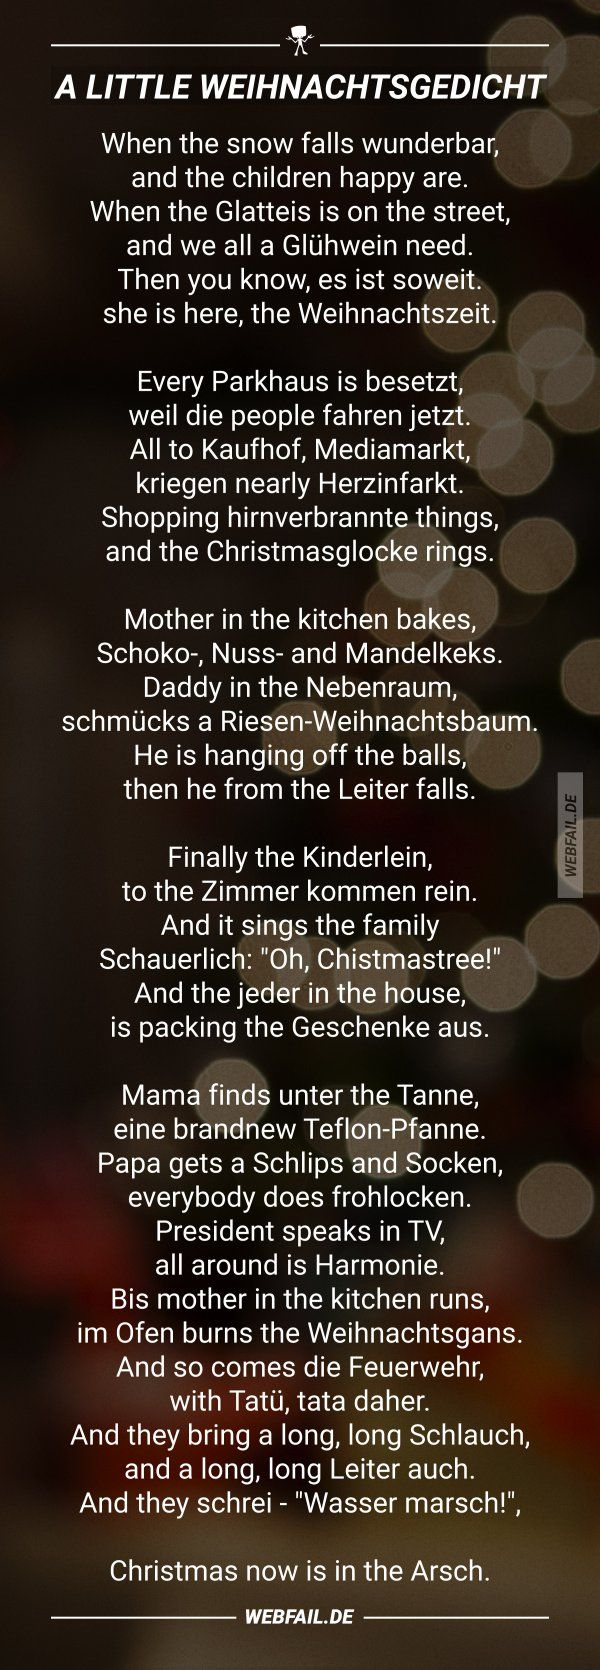 A Little Weihnachtsgedicht Webfail Fail Bilder Und Fail Videos Christmas Poems Funny Christmas Poems Funny Poems